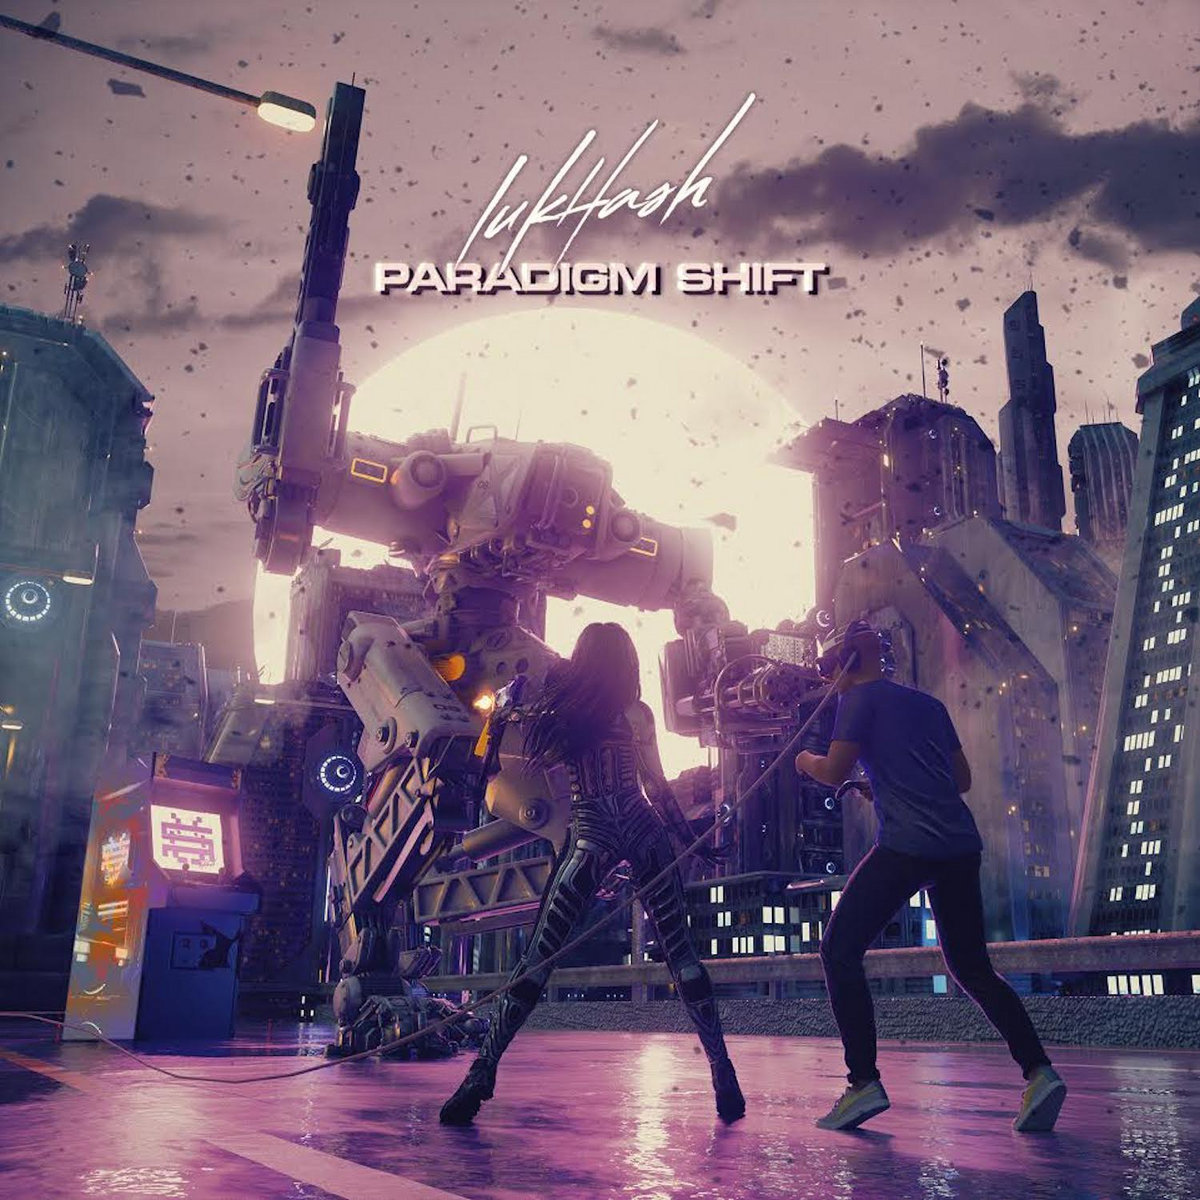 a4120531864 10 - Lukhash - Paradigm Shift